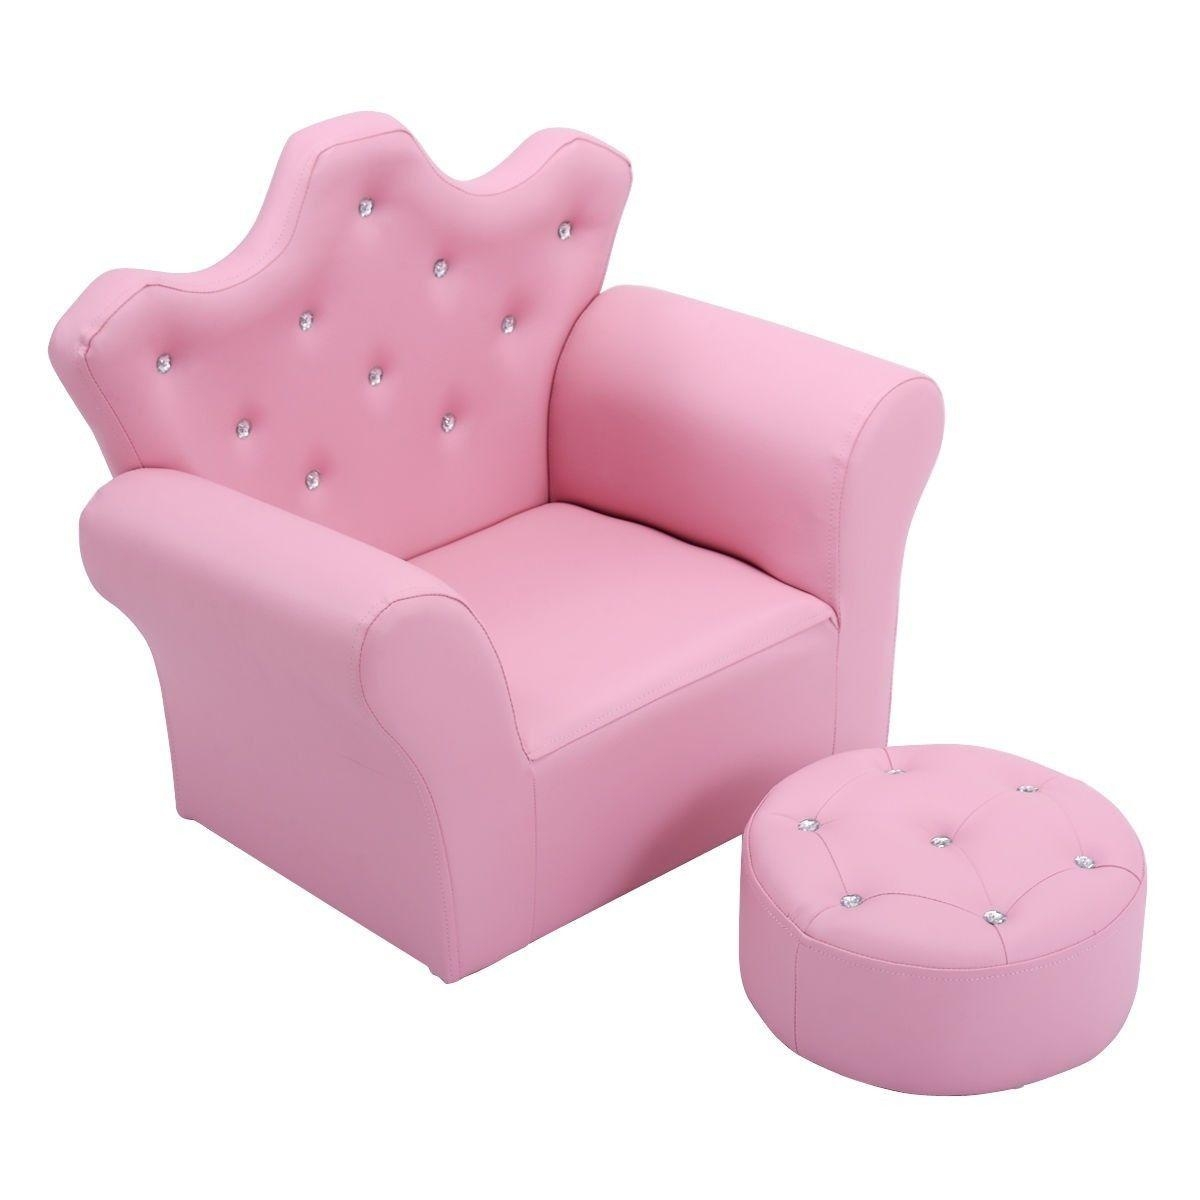 Princess Pink Chair With Ottoman Couch Kids Living Room Toddler For Kids Sofa Chair And Ottoman Set Zebra (Image 15 of 20)